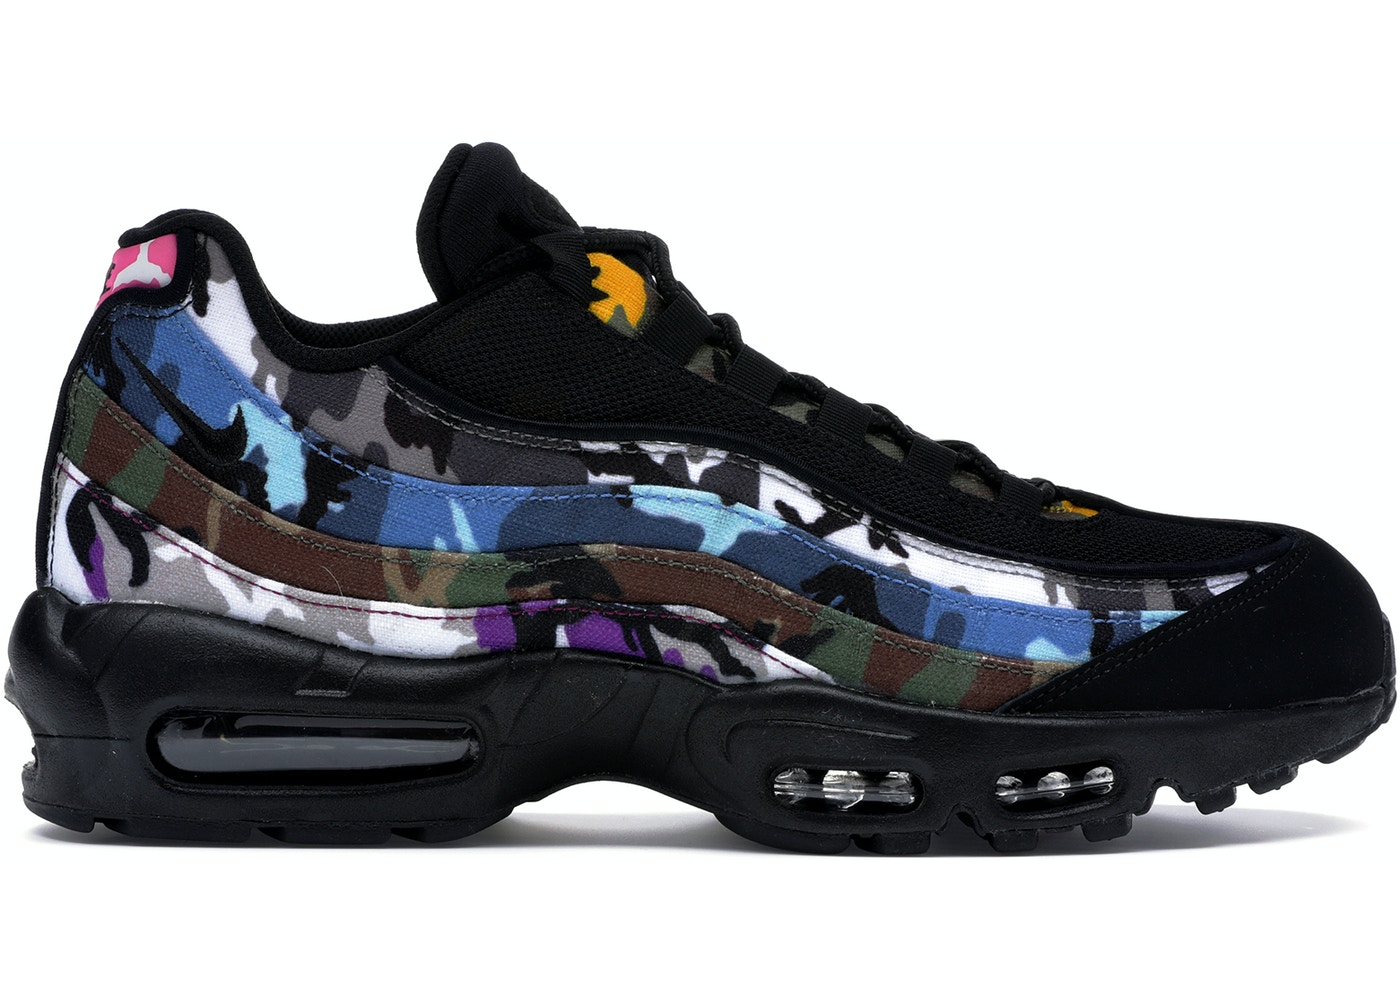 14452dda55 Air Max 95 ERDL Party Black - AR4473-001